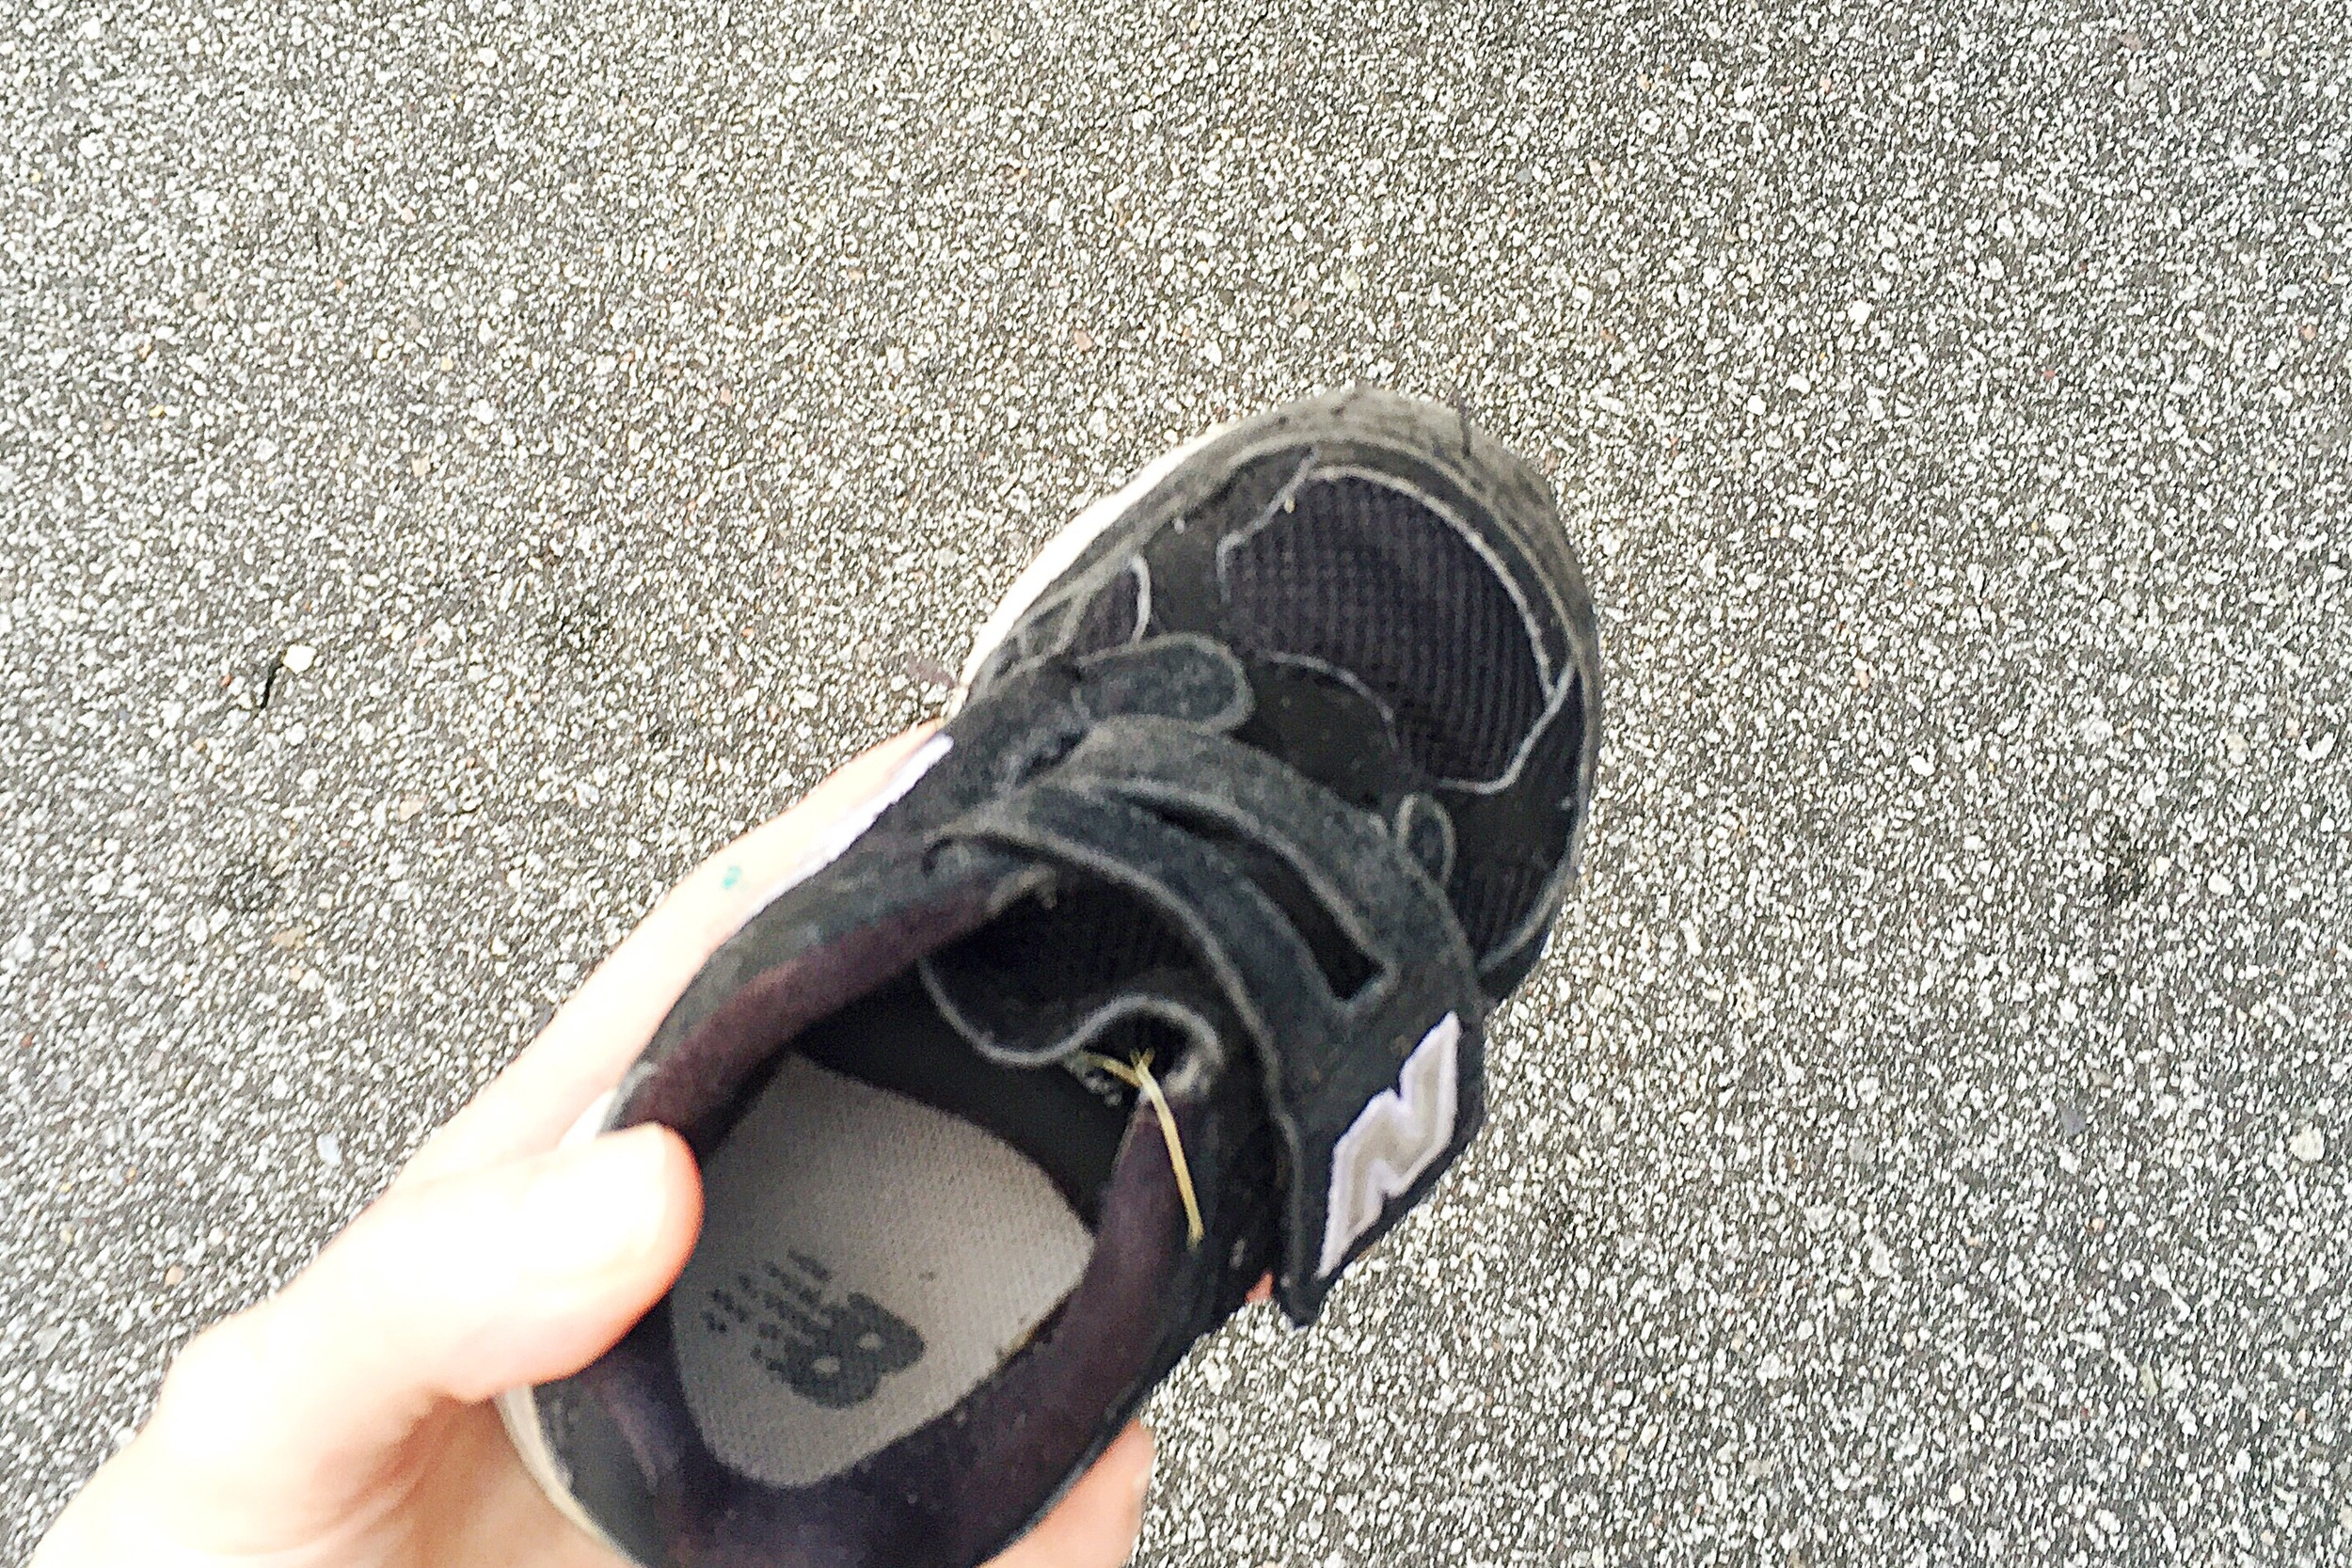 My son's shoe - Yep, I carried it during the race